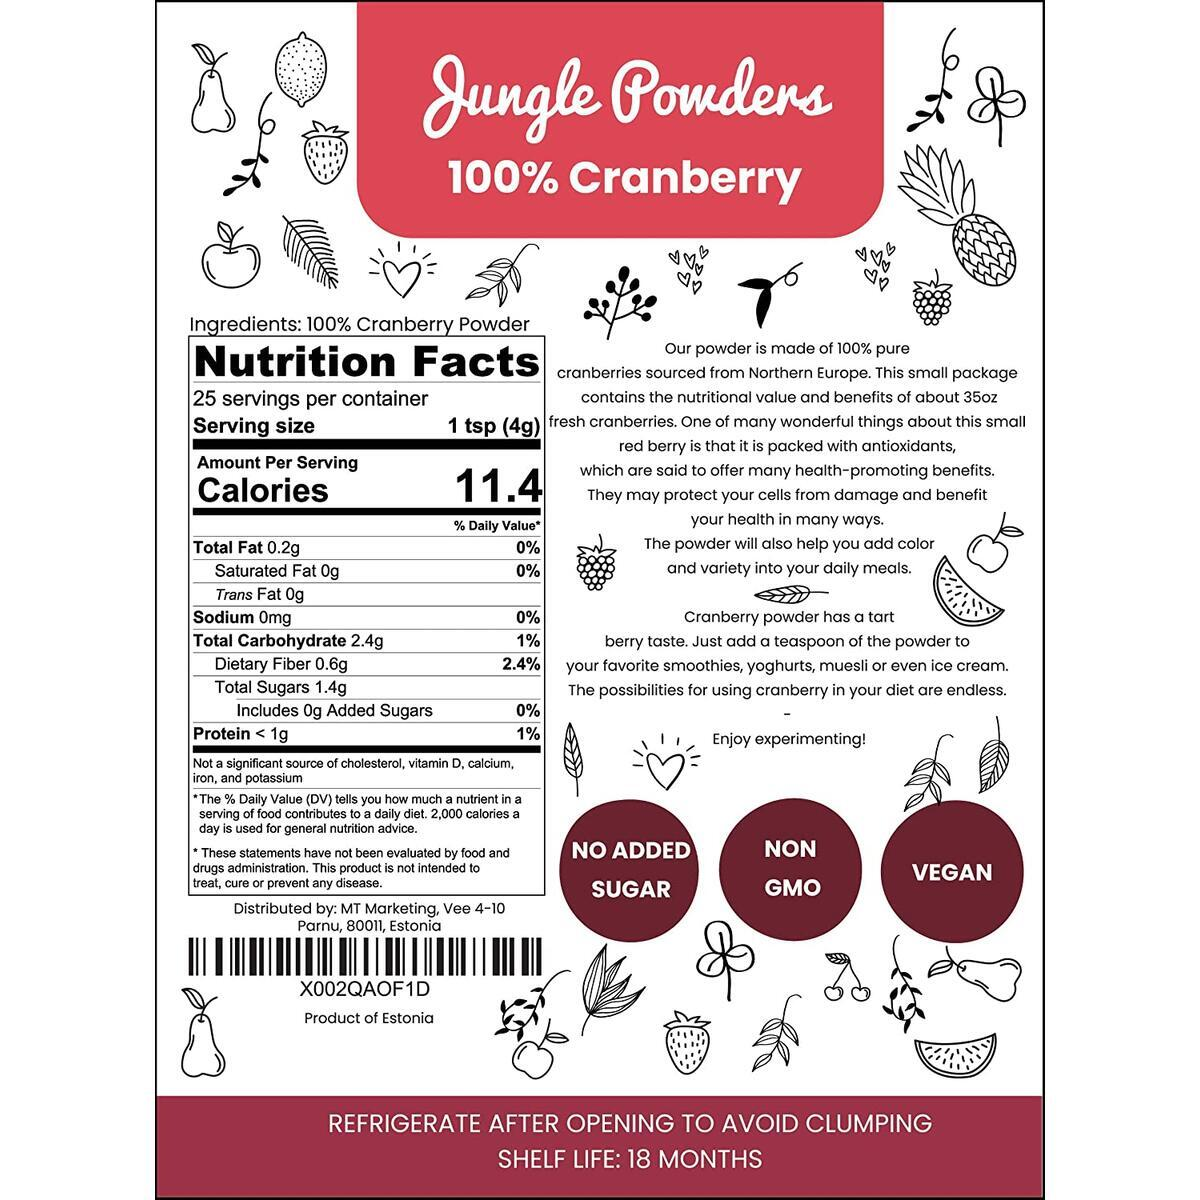 Jungle Powders Cranberry Powder | 3.5oz 100% Natural Non GMO Vegan Friendly Red Freeze Dried Cranberry Extract | Powdered Cranberries No Sugar Added